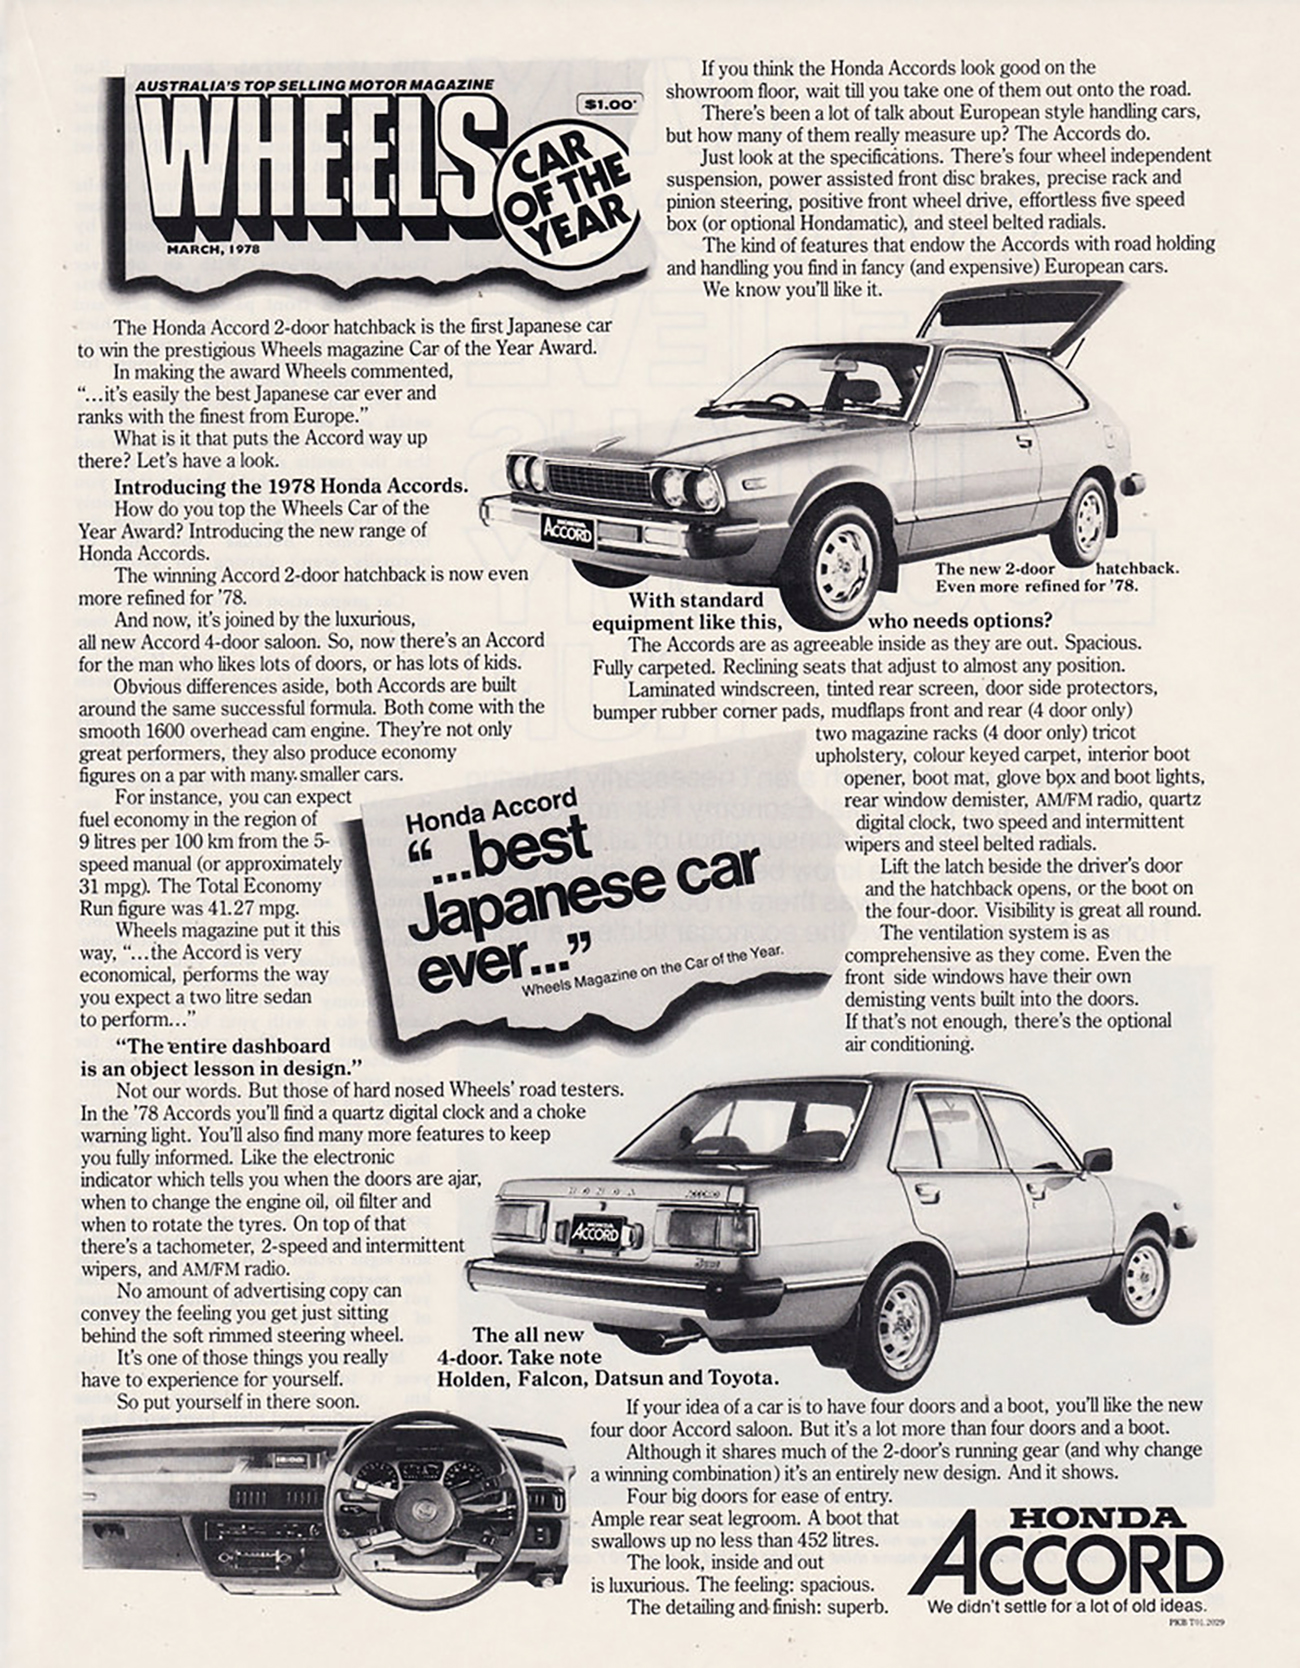 1976 Honda Accord Ad